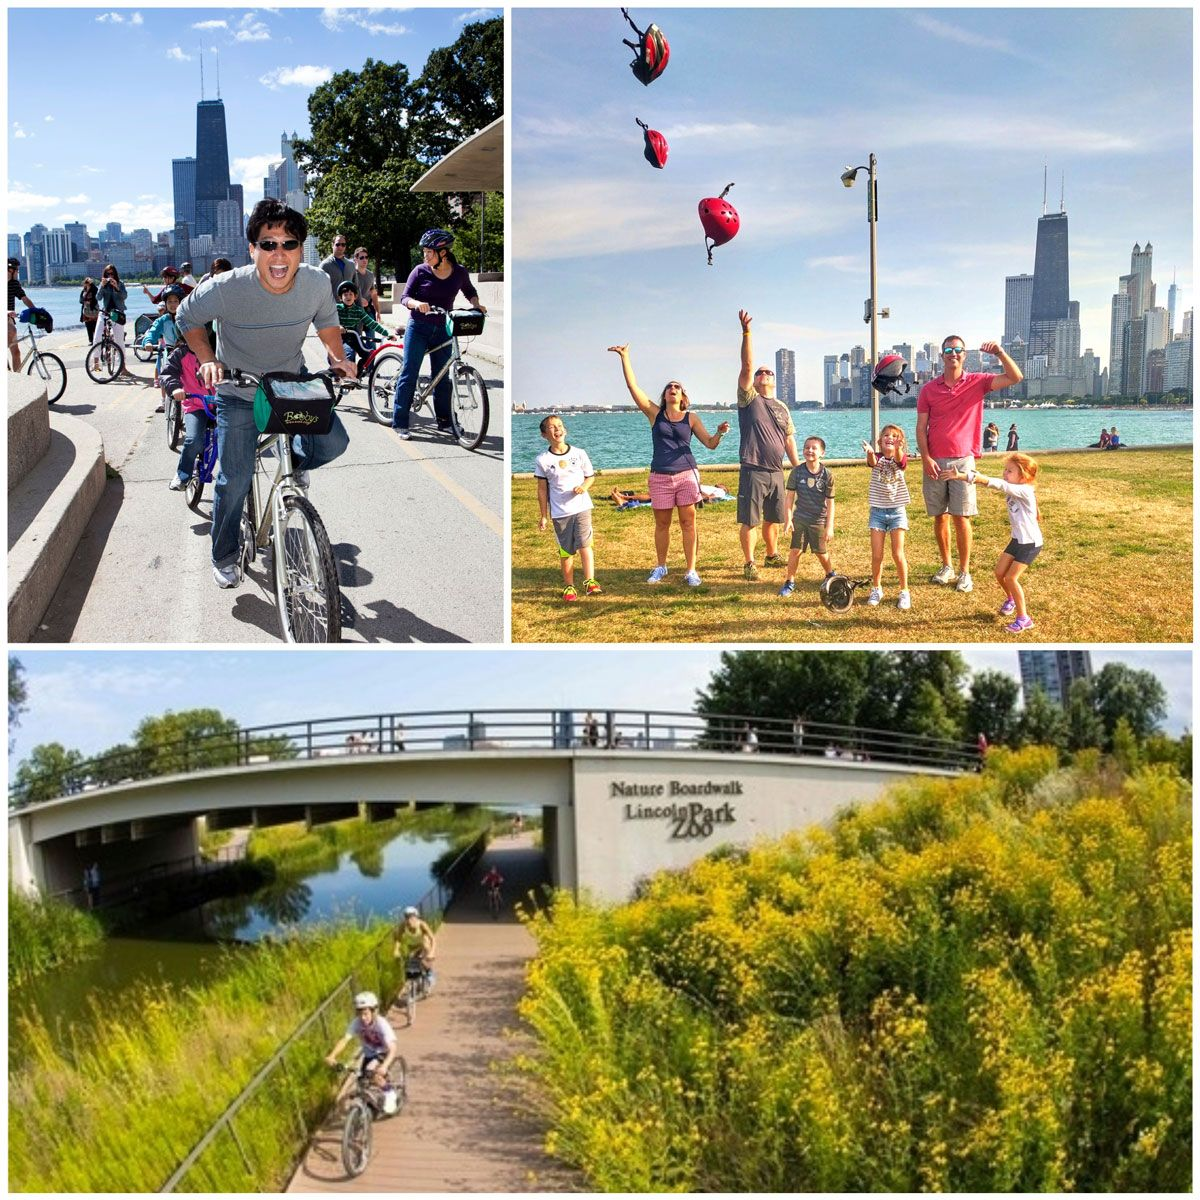 Bobby's Tike Hike Bike Tour in Chicago. Family riding along lakeside trail with Chicago skyline in the background, kids riding on trail in Lincoln Park